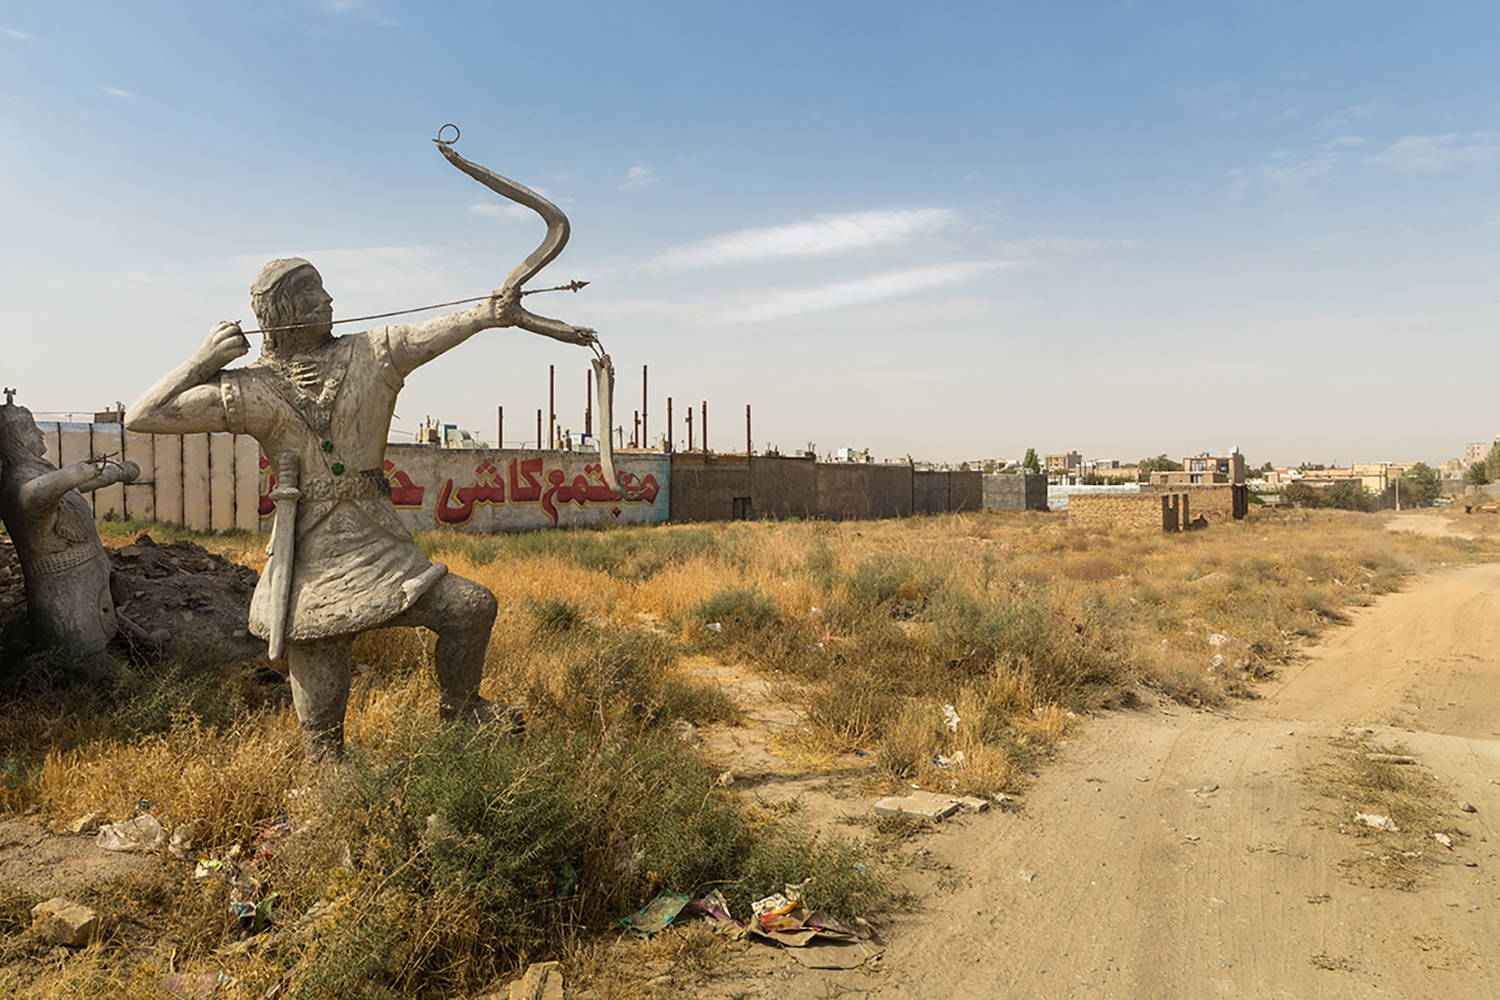 The sculpture of Arash the Archer who is a heroic archer-figure of Iranian mythology. It has been abandoned in roadside due to obsolescence, Chenaran, Iran.